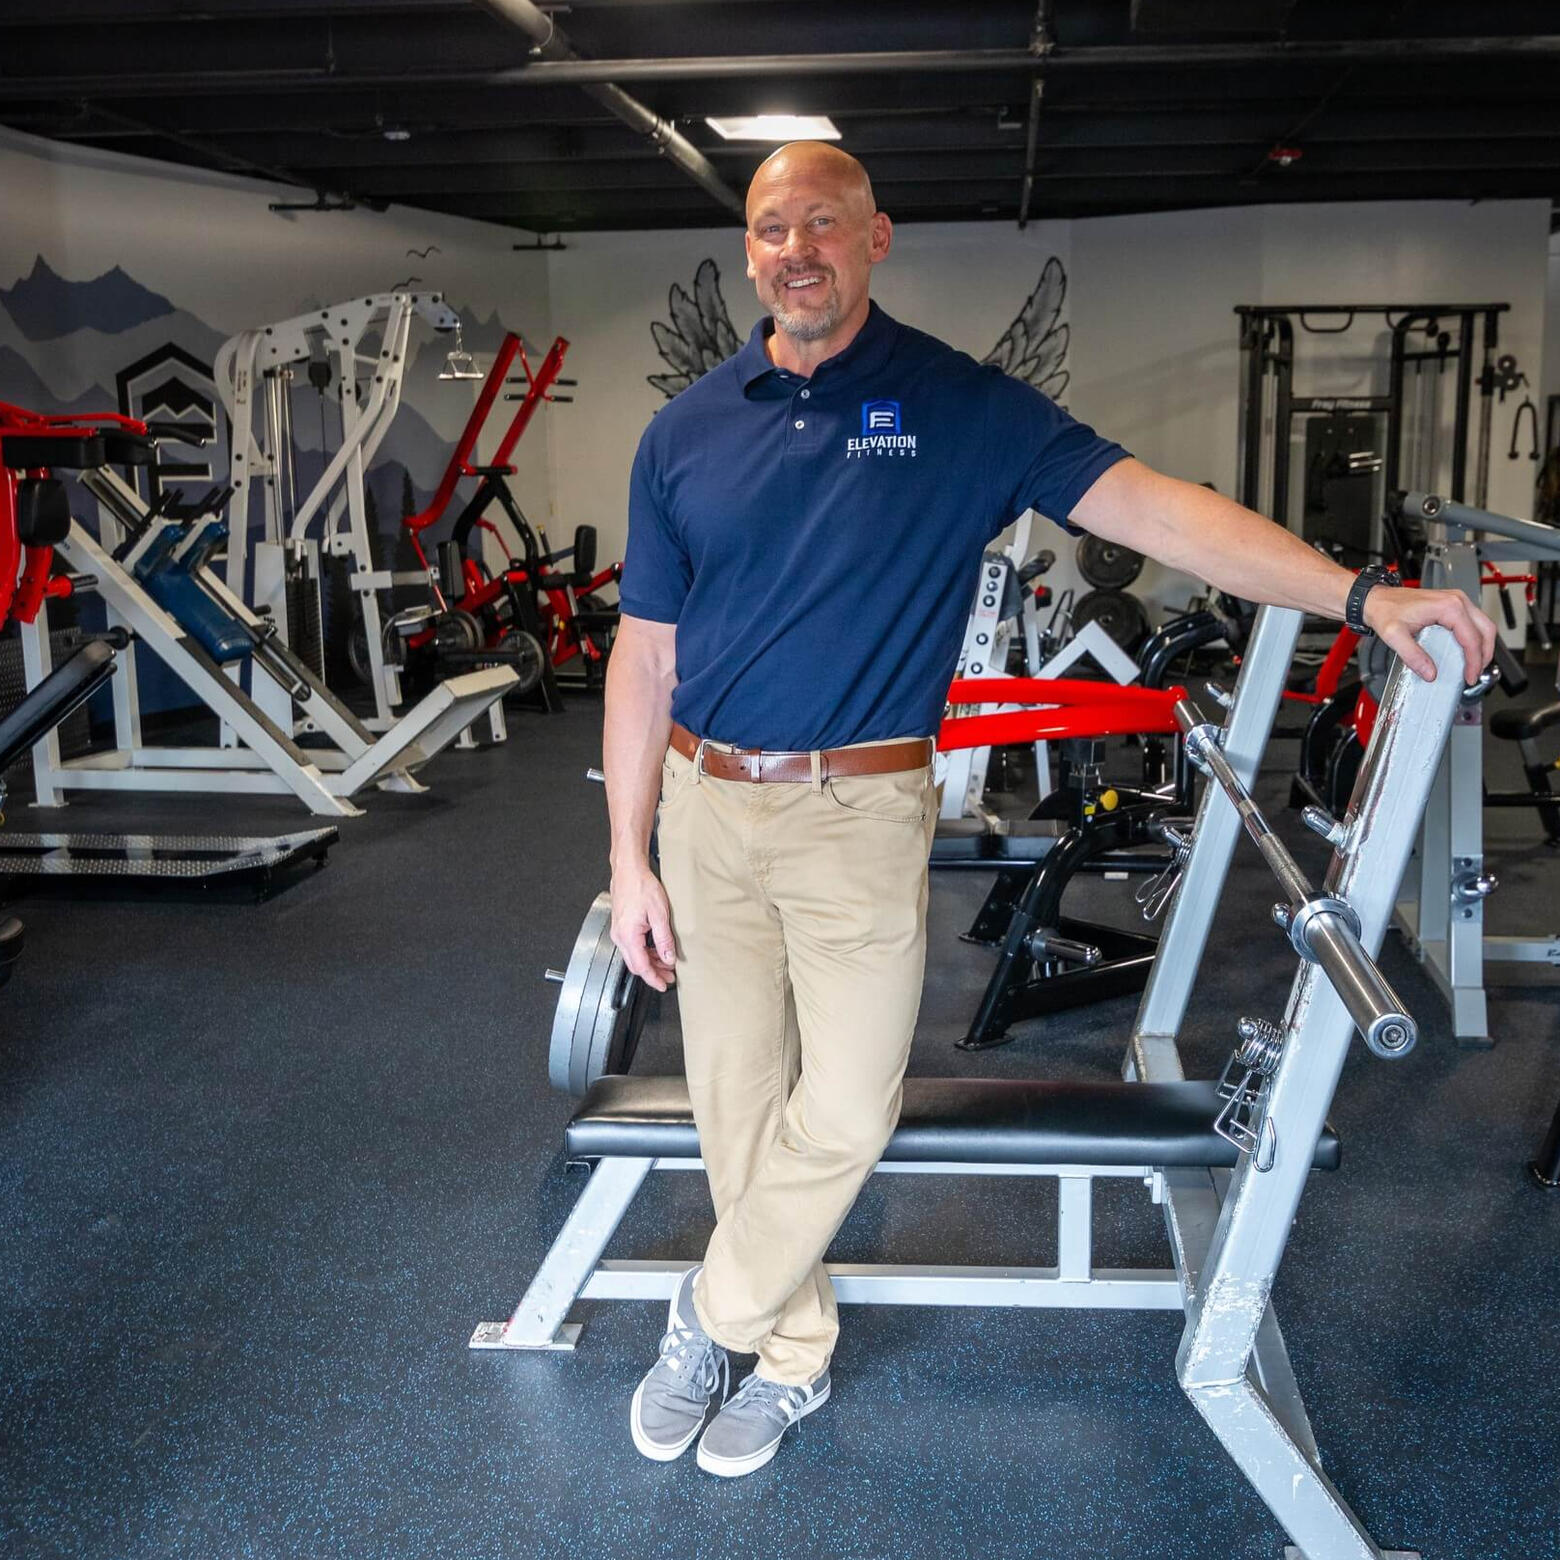 Jim Owen, Elevation Fitness